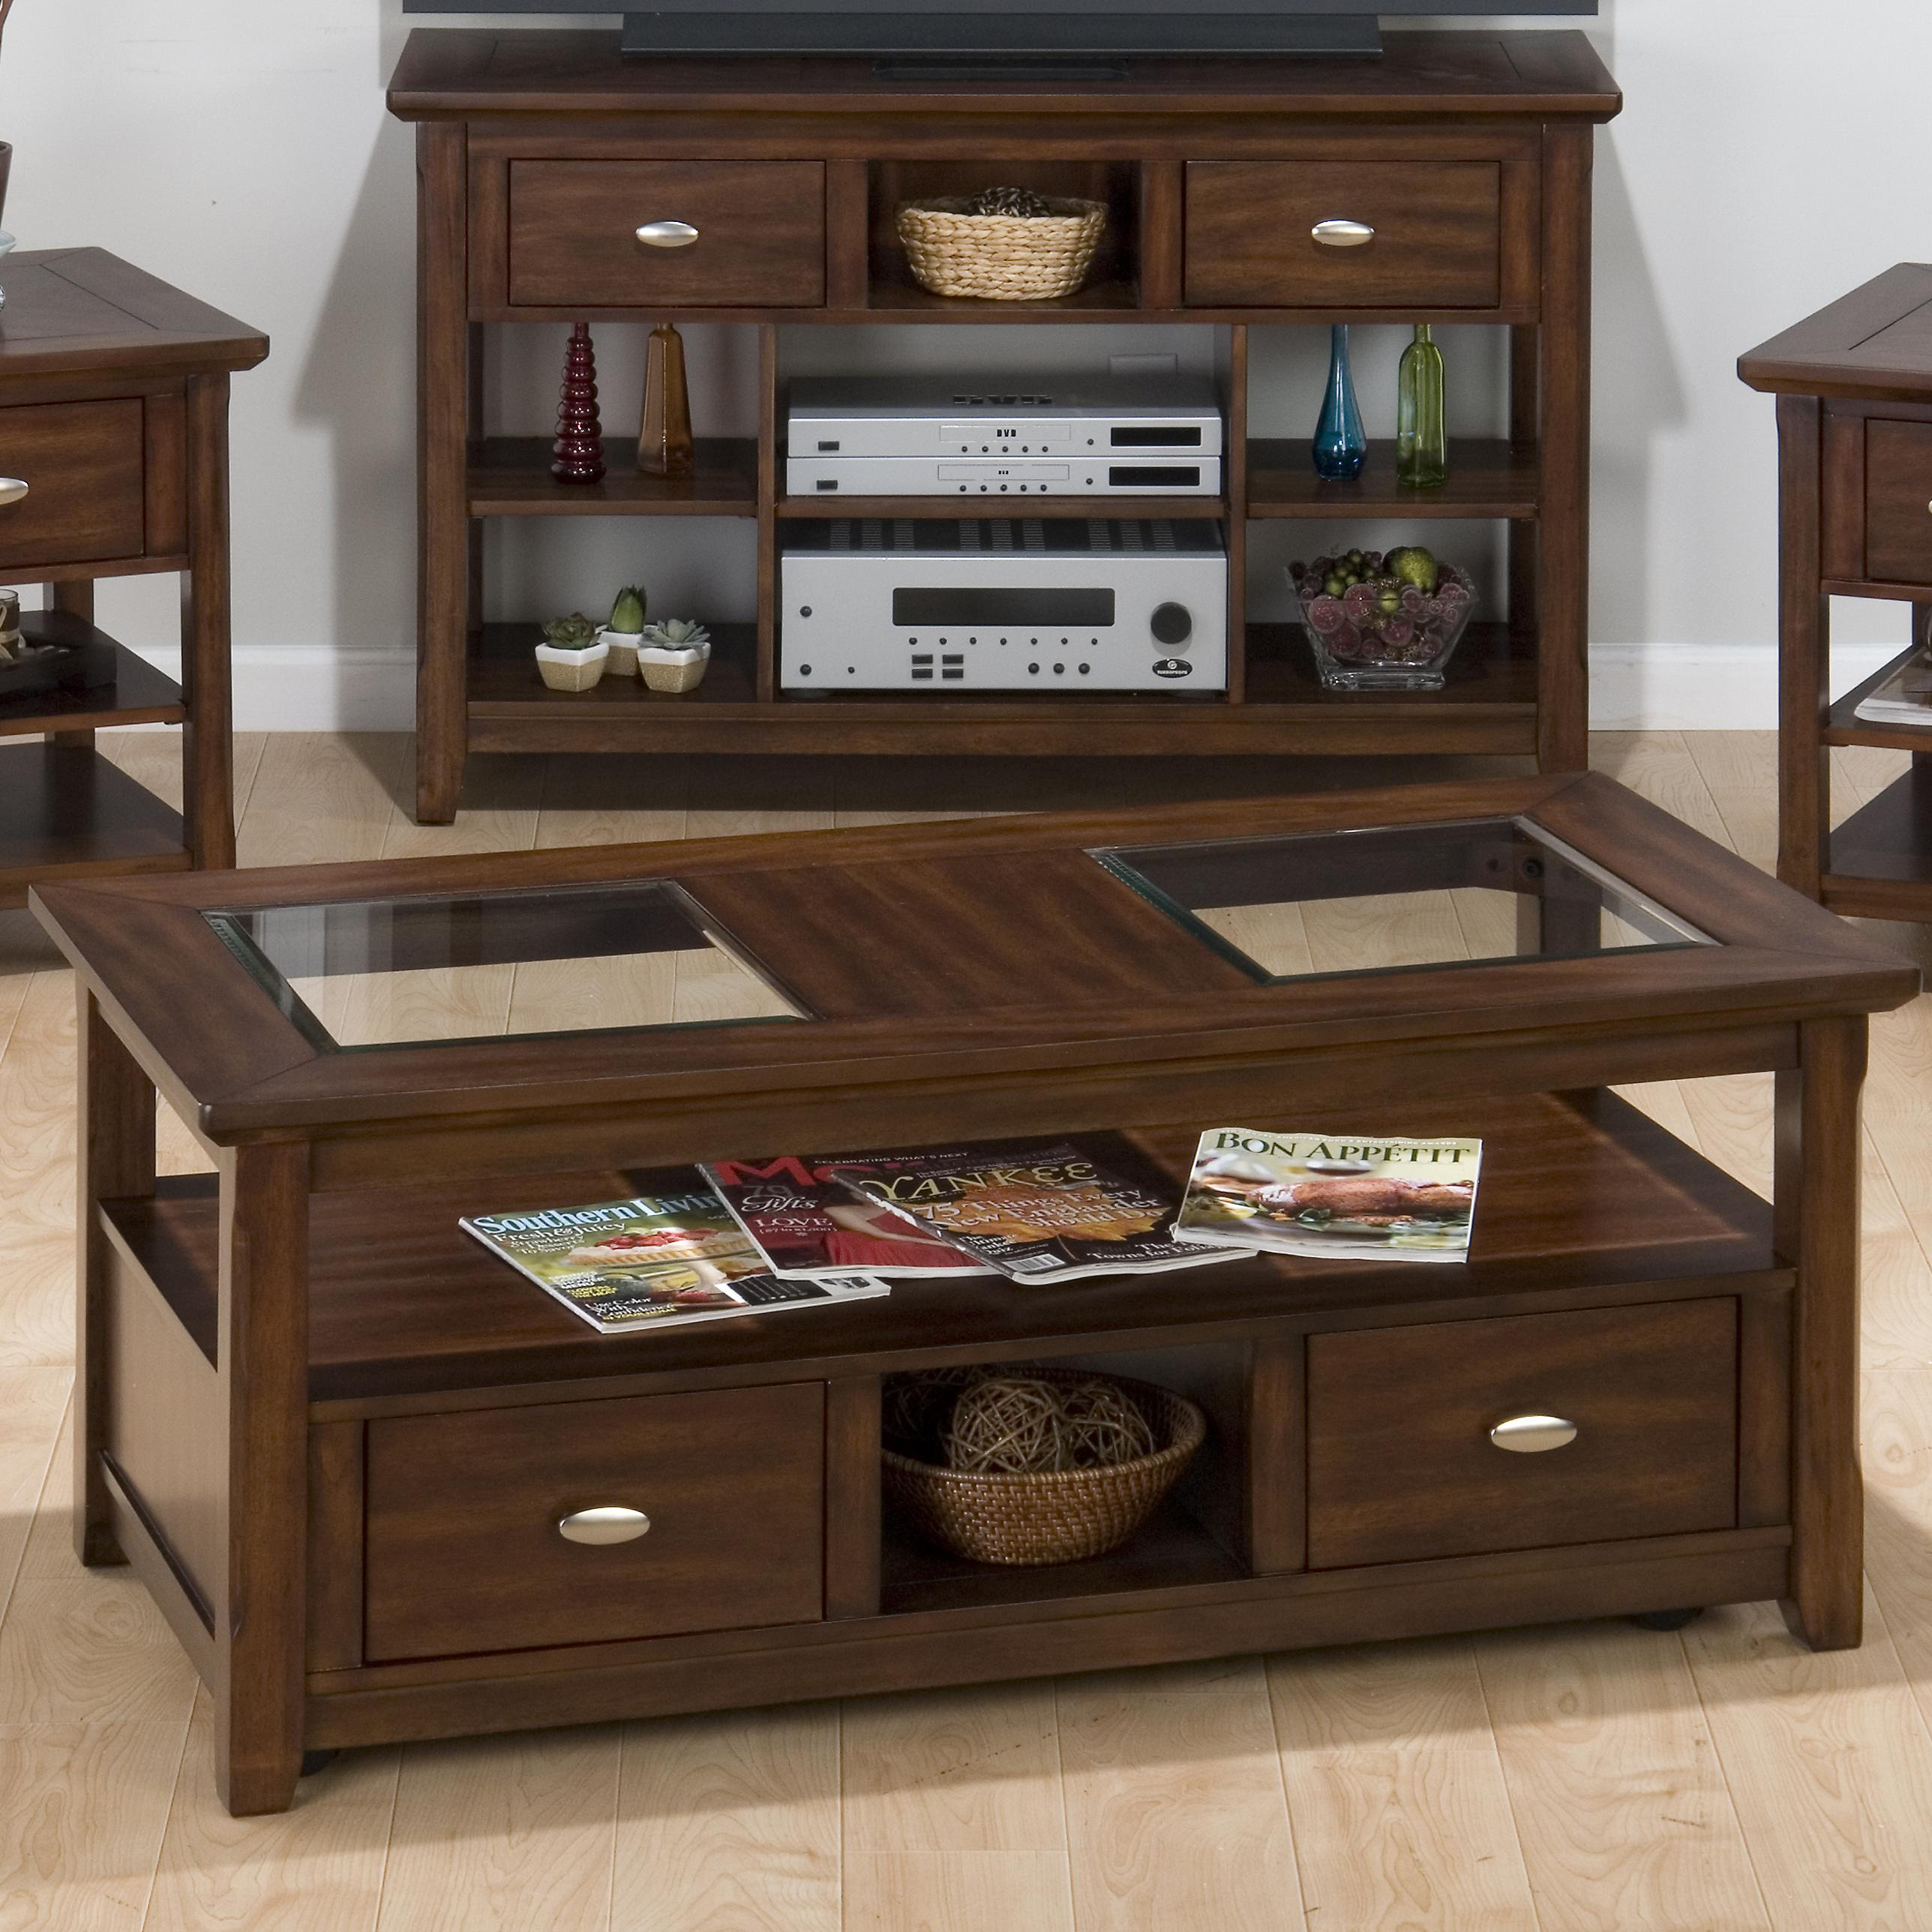 Jofran Bellingham Brown Cocktail table w/ 2 Drawers, Shelf & Casters - Item Number: 709-1